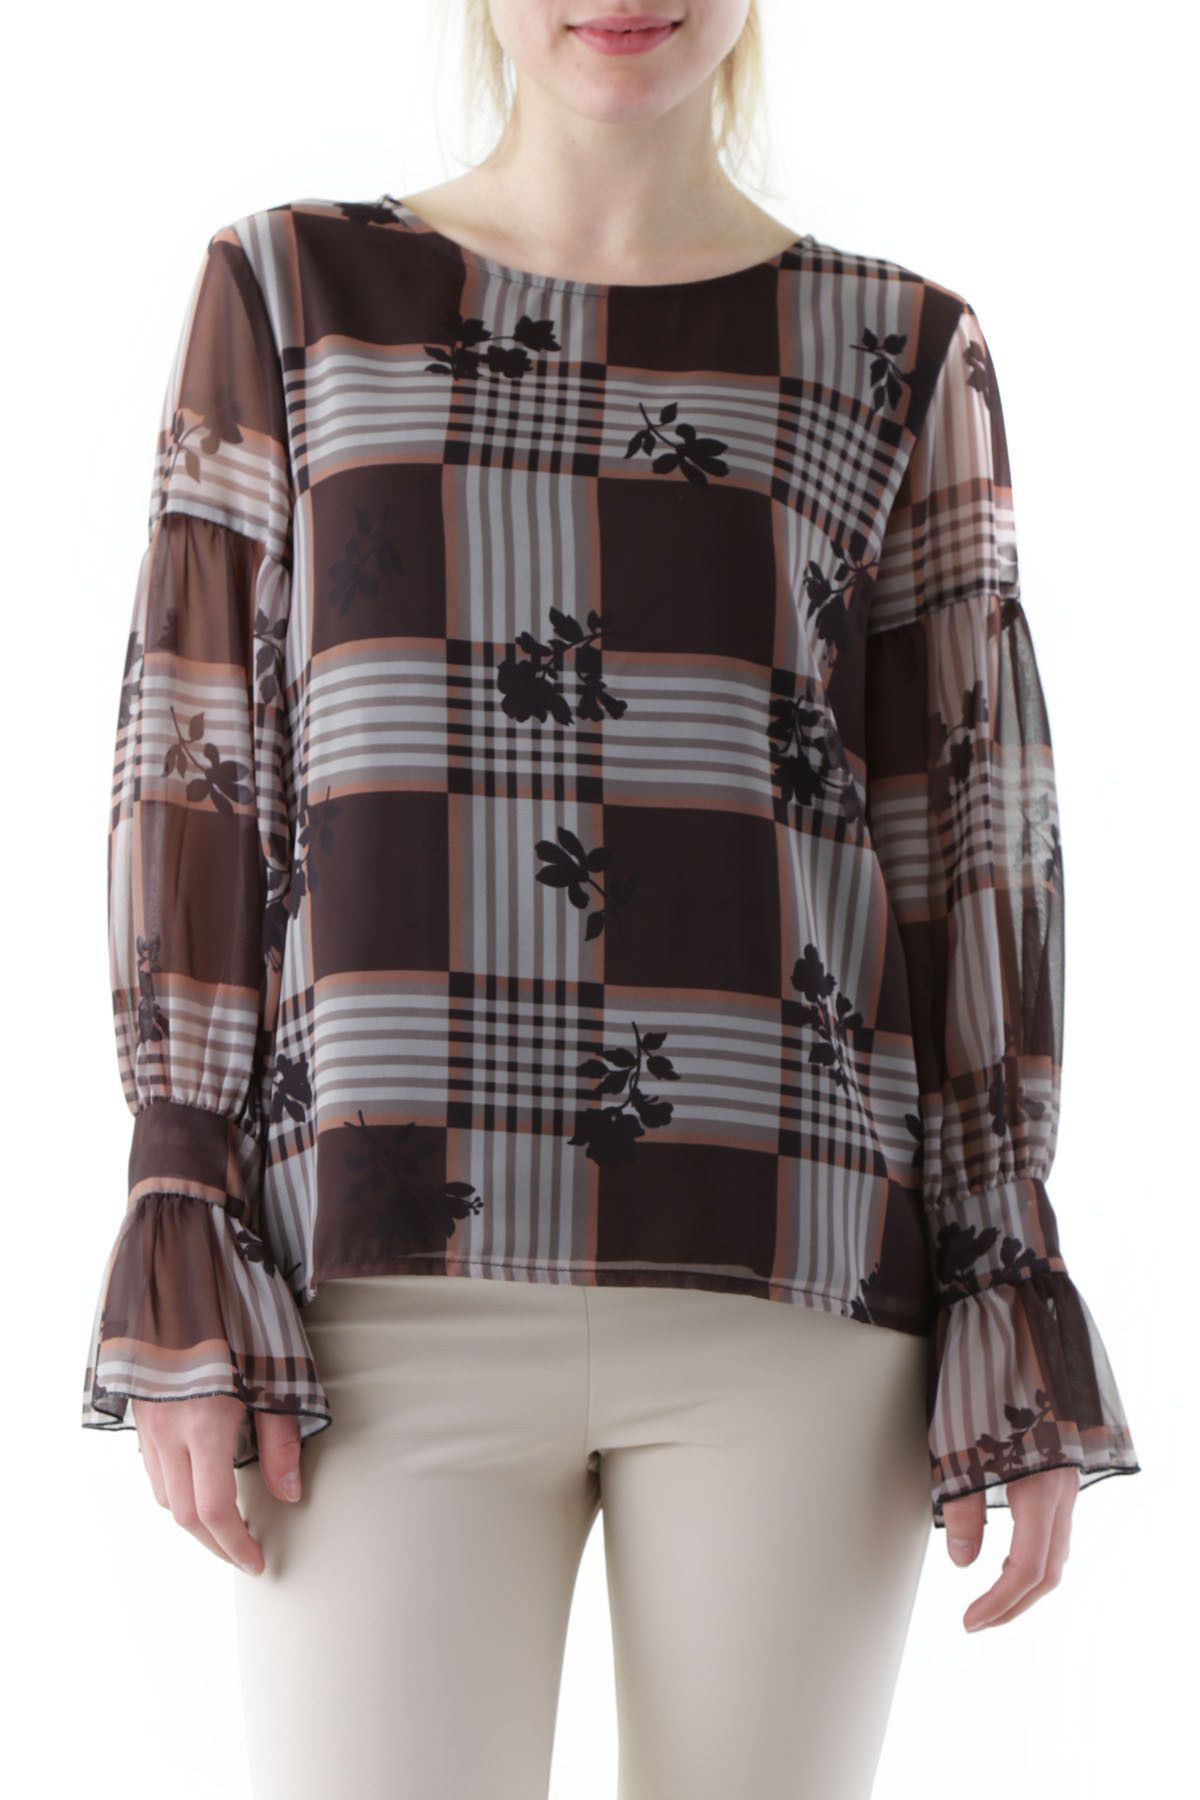 Olivia Hops Women's Blouse In Brown